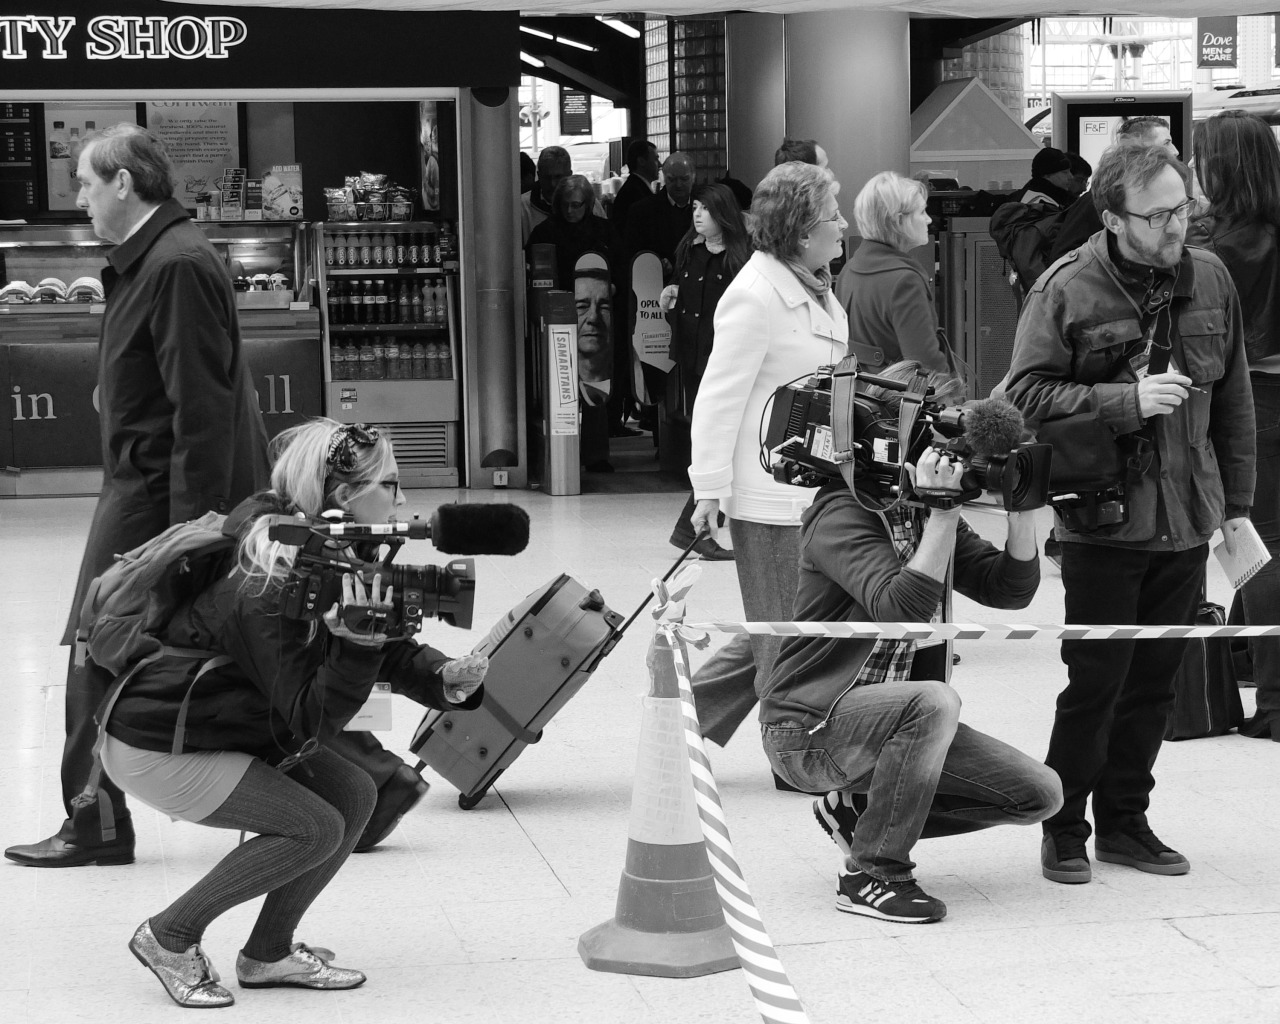 And…ACTION! Camera crew filming an advert, Waterloo Station, London